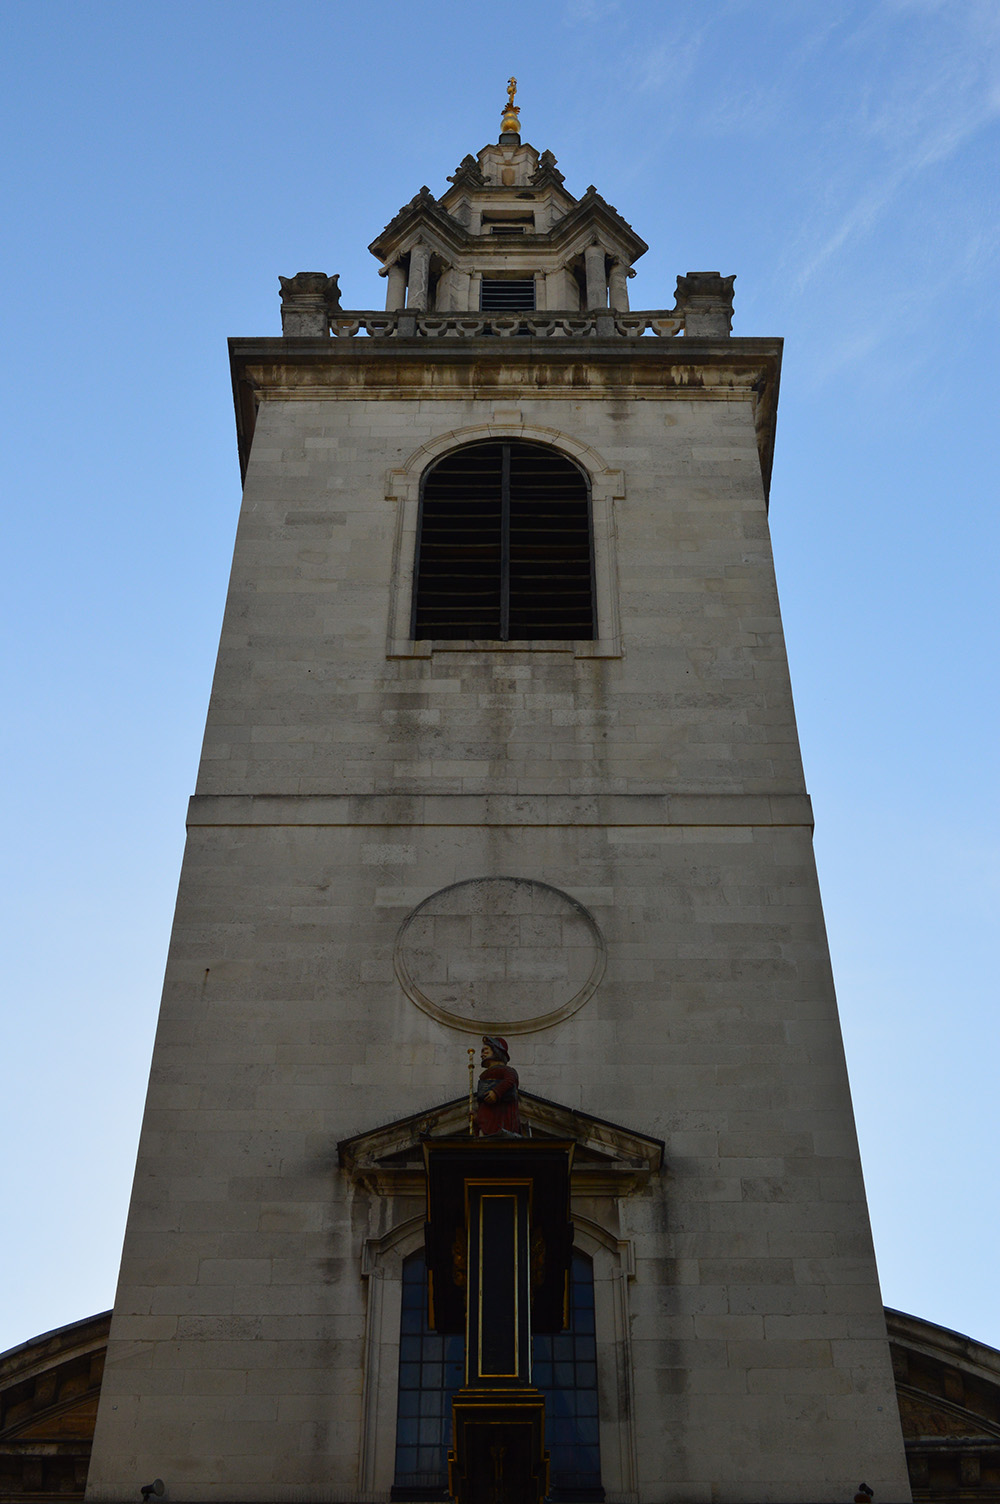 Image taken from below pointing up at St James Garlickhythe's Hawksmoor bell tower